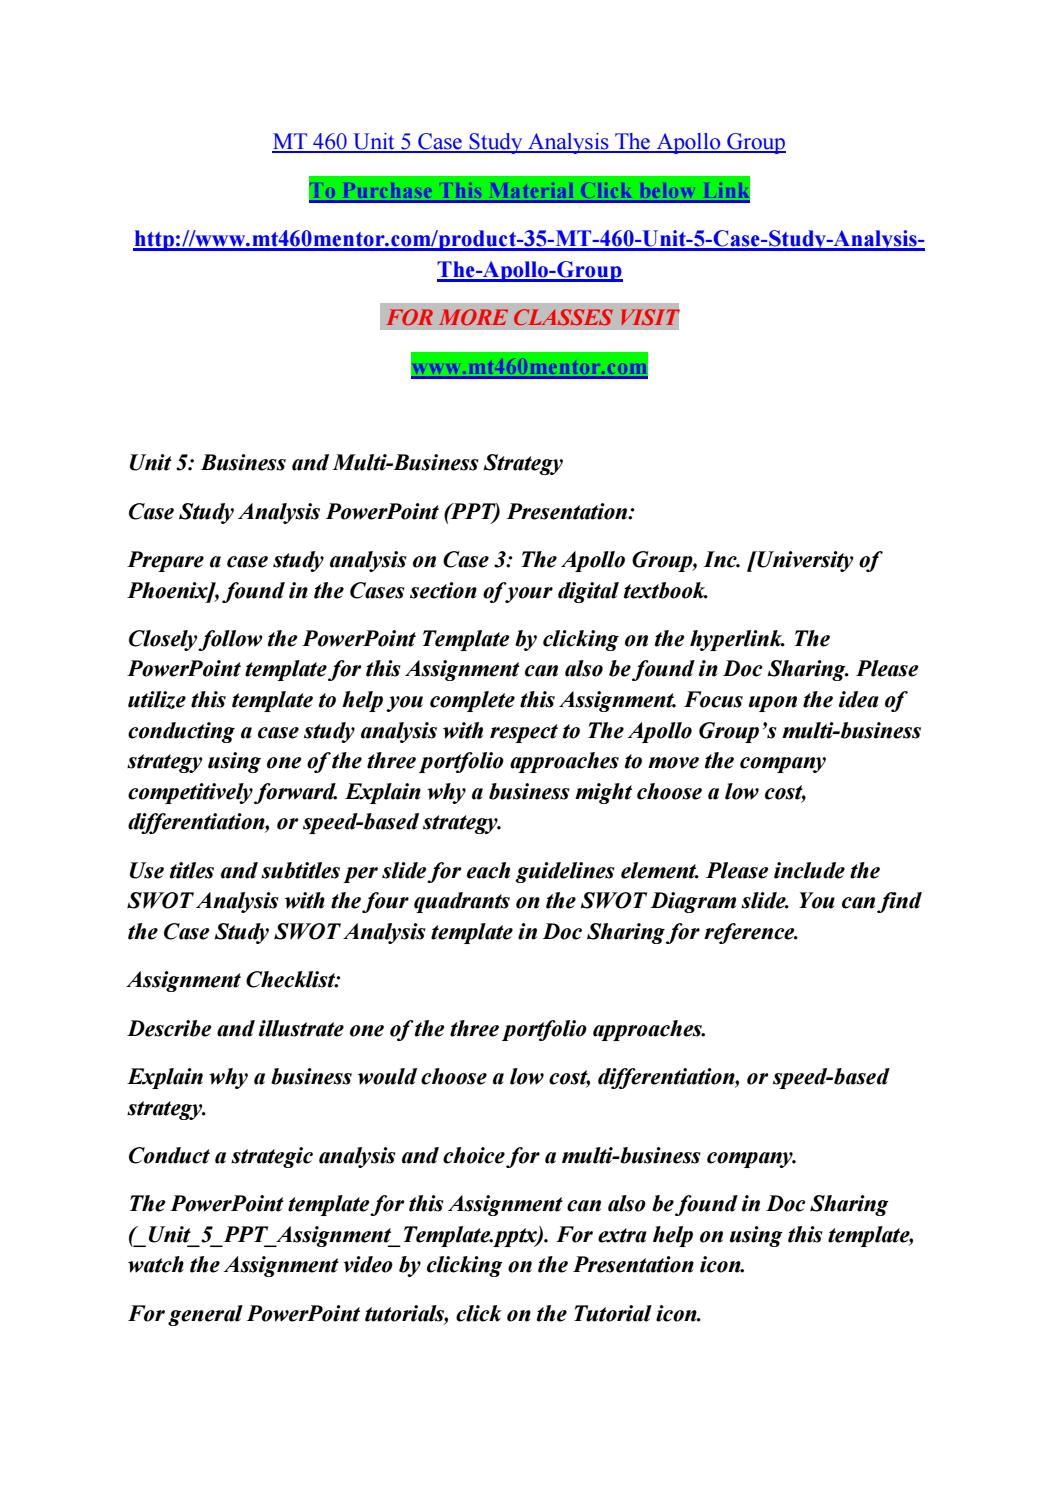 case study apollo group phoenix university The university of phoenix (uop) was founded in 1976 by dr john g sperling, now chairman and ceo of apollo group, as the first accredited for-profit university at cambridge university before becoming a fully tenured humanities professor at san jose state university in the early 1970s with a grant to study a means by.